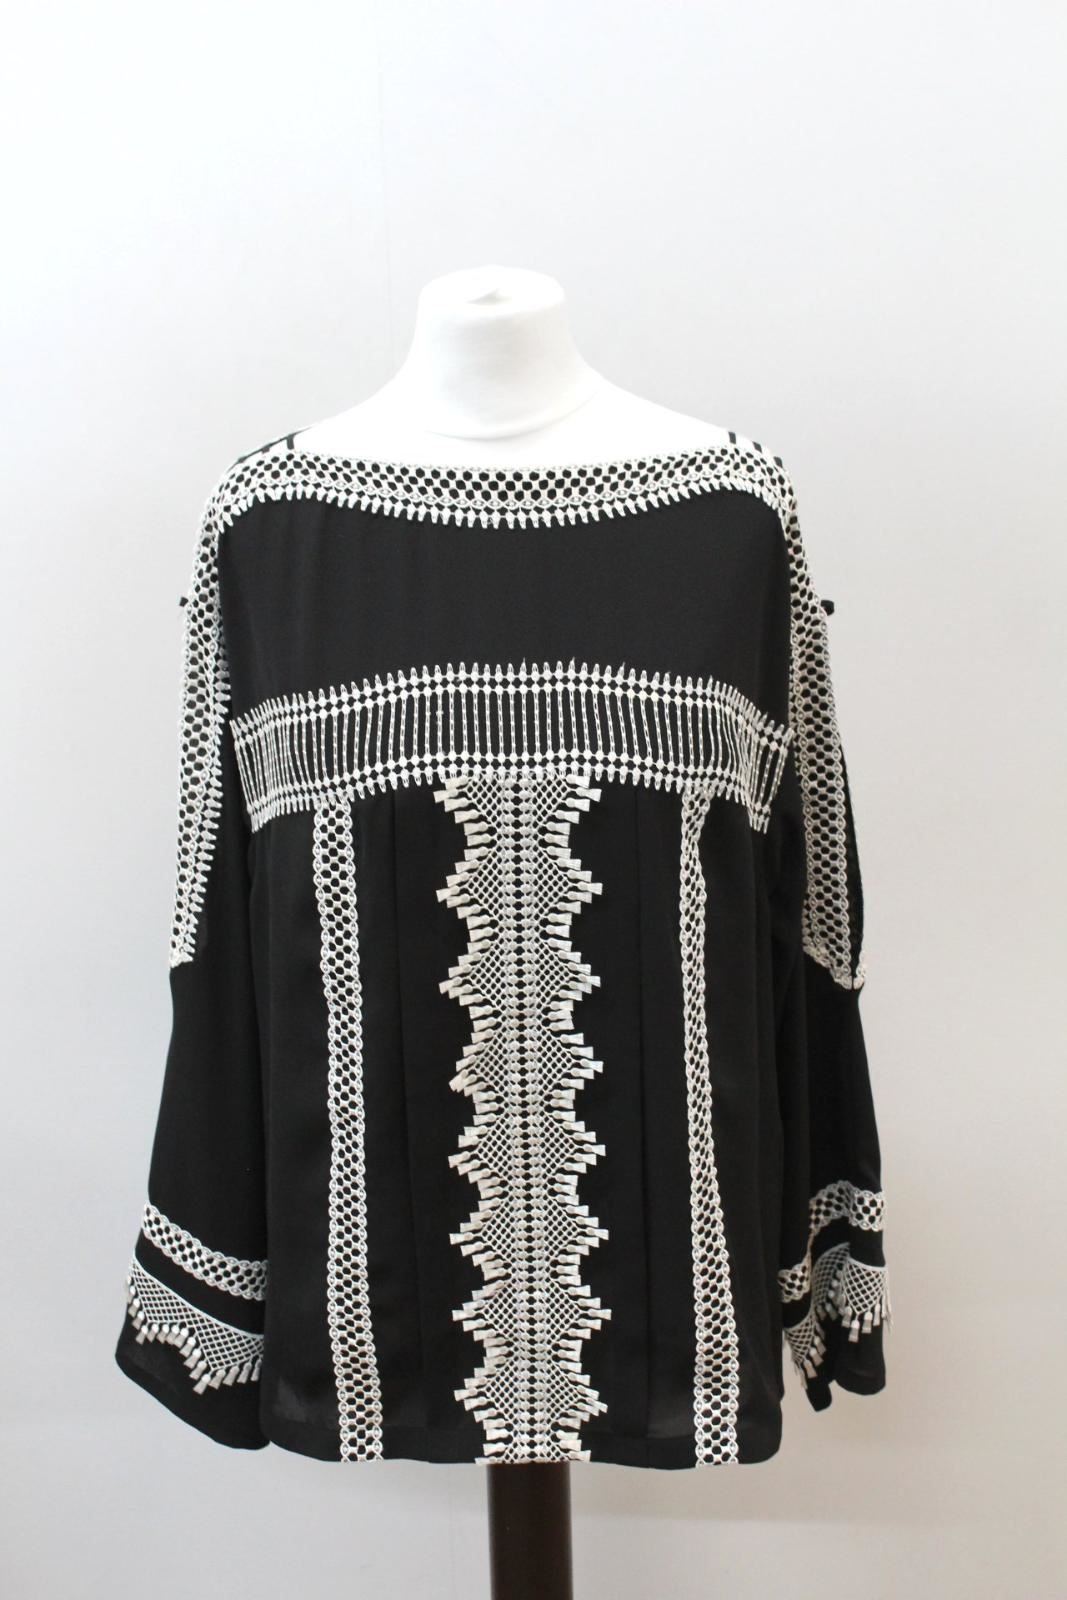 KAREN MILLEN Ladies schwarz Weiß Long Slit Sleeve Embroiderot Blouse UK12 BNWT